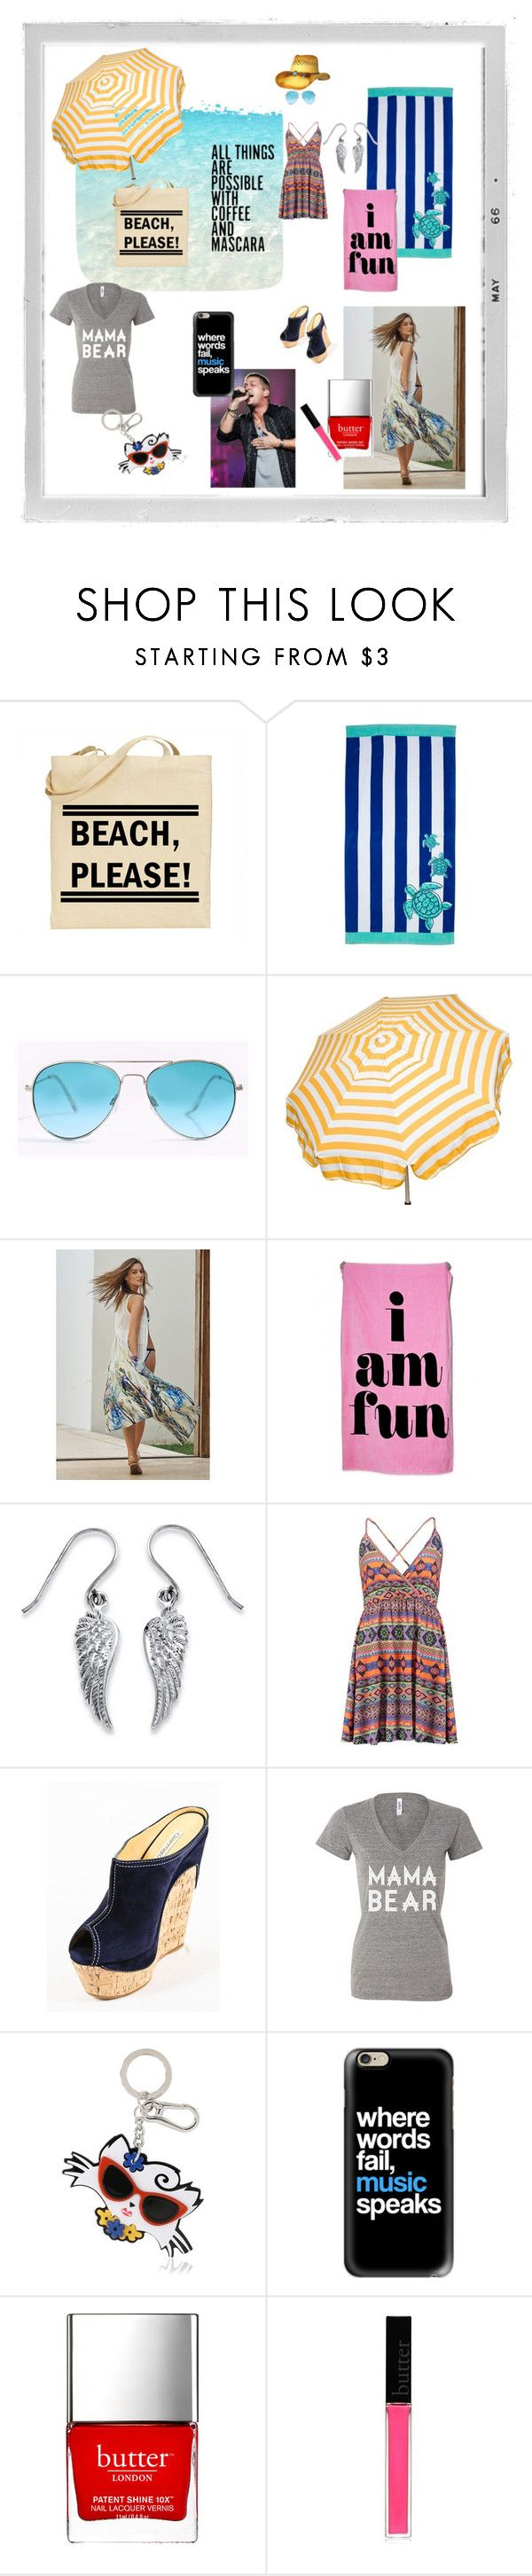 """Me"" by desperer ❤ liked on Polyvore featuring Polaroid, Parasol, Swim by Anthropologie, band.do, Palm Beach Jewelry, Gianmarco Lorenzi, Karl Lagerfeld, Casetify, Butter London and allaboutme"